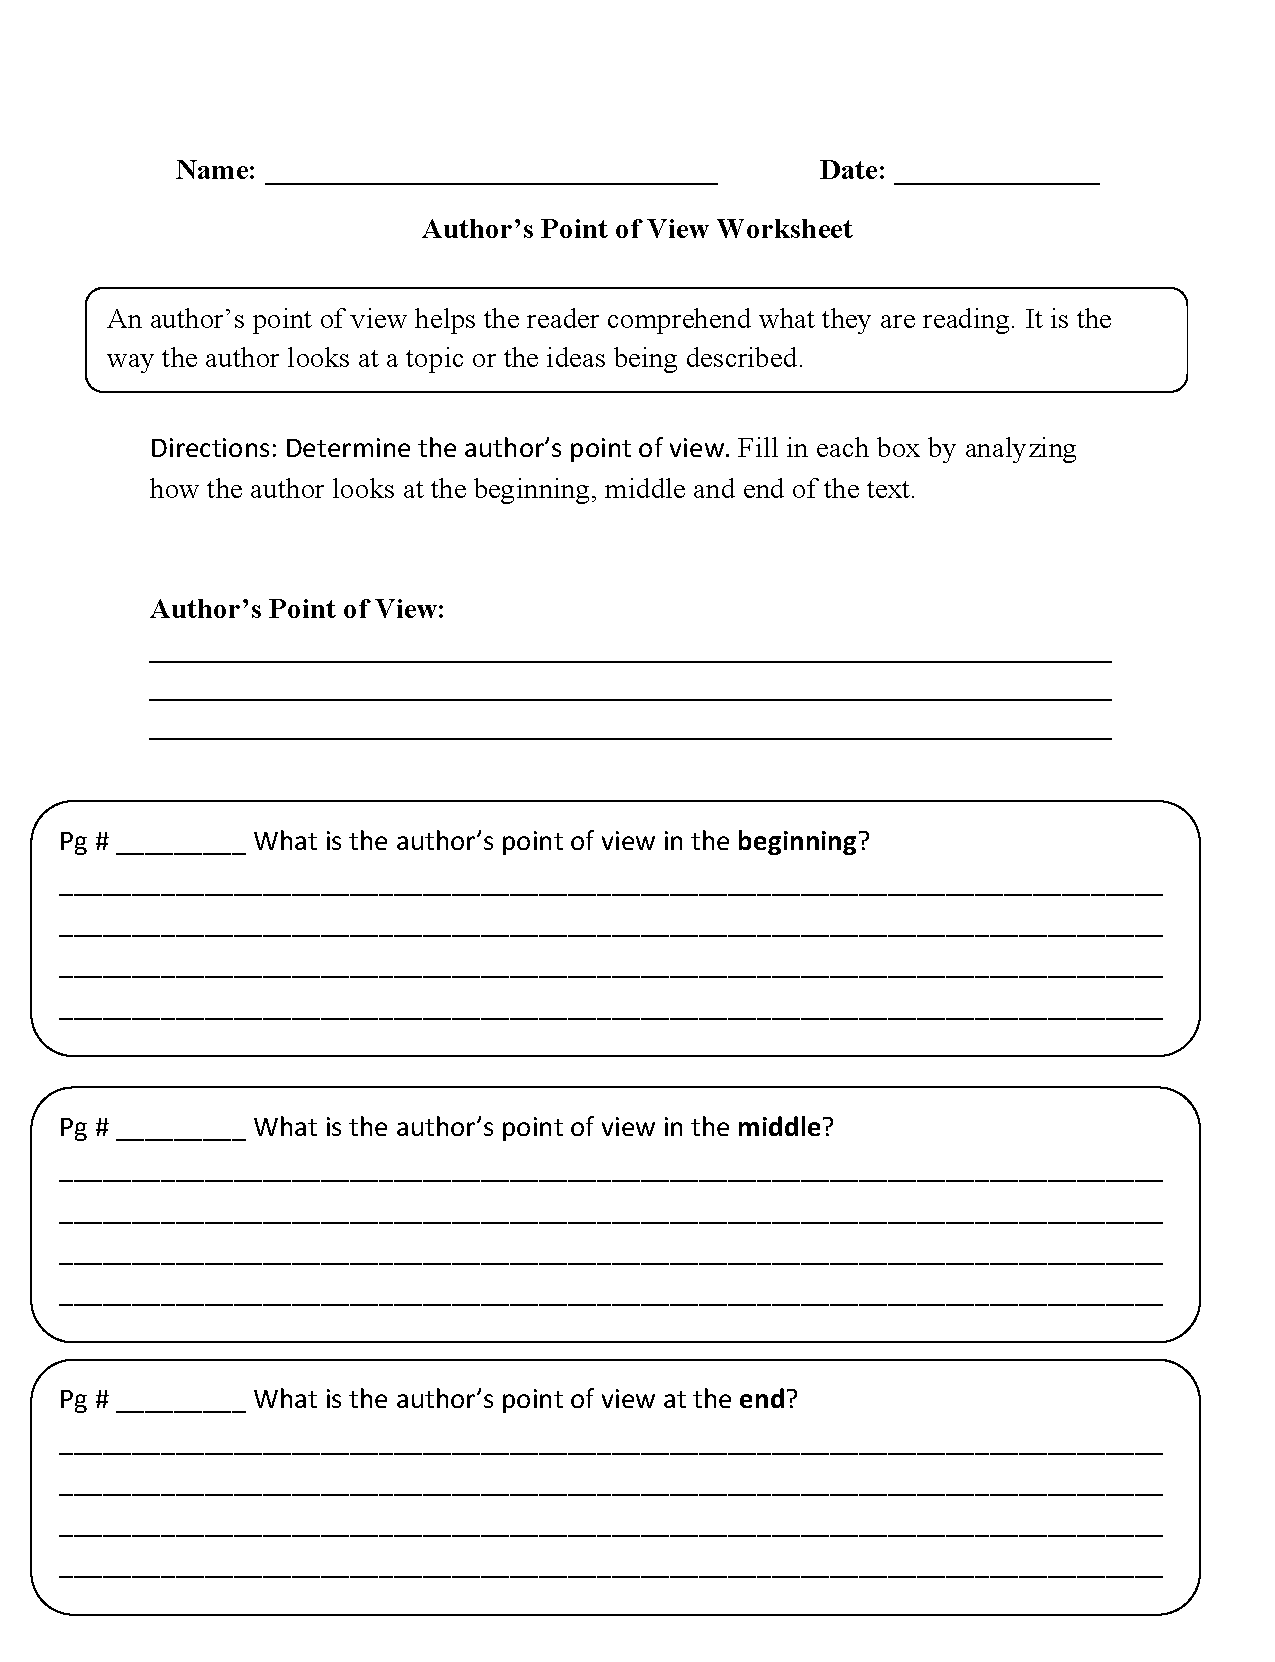 Weirdmailus  Ravishing Englishlinxcom  Point Of View Worksheets With Interesting Point Of View Worksheets With Agreeable Free Impulse Control Worksheets Also French Printable Worksheets In Addition Color By Number Worksheets For Preschool And Microsoft Word Worksheet As Well As Adding Numbers Worksheets Additionally Letter O Worksheets Kindergarten From Englishlinxcom With Weirdmailus  Interesting Englishlinxcom  Point Of View Worksheets With Agreeable Point Of View Worksheets And Ravishing Free Impulse Control Worksheets Also French Printable Worksheets In Addition Color By Number Worksheets For Preschool From Englishlinxcom